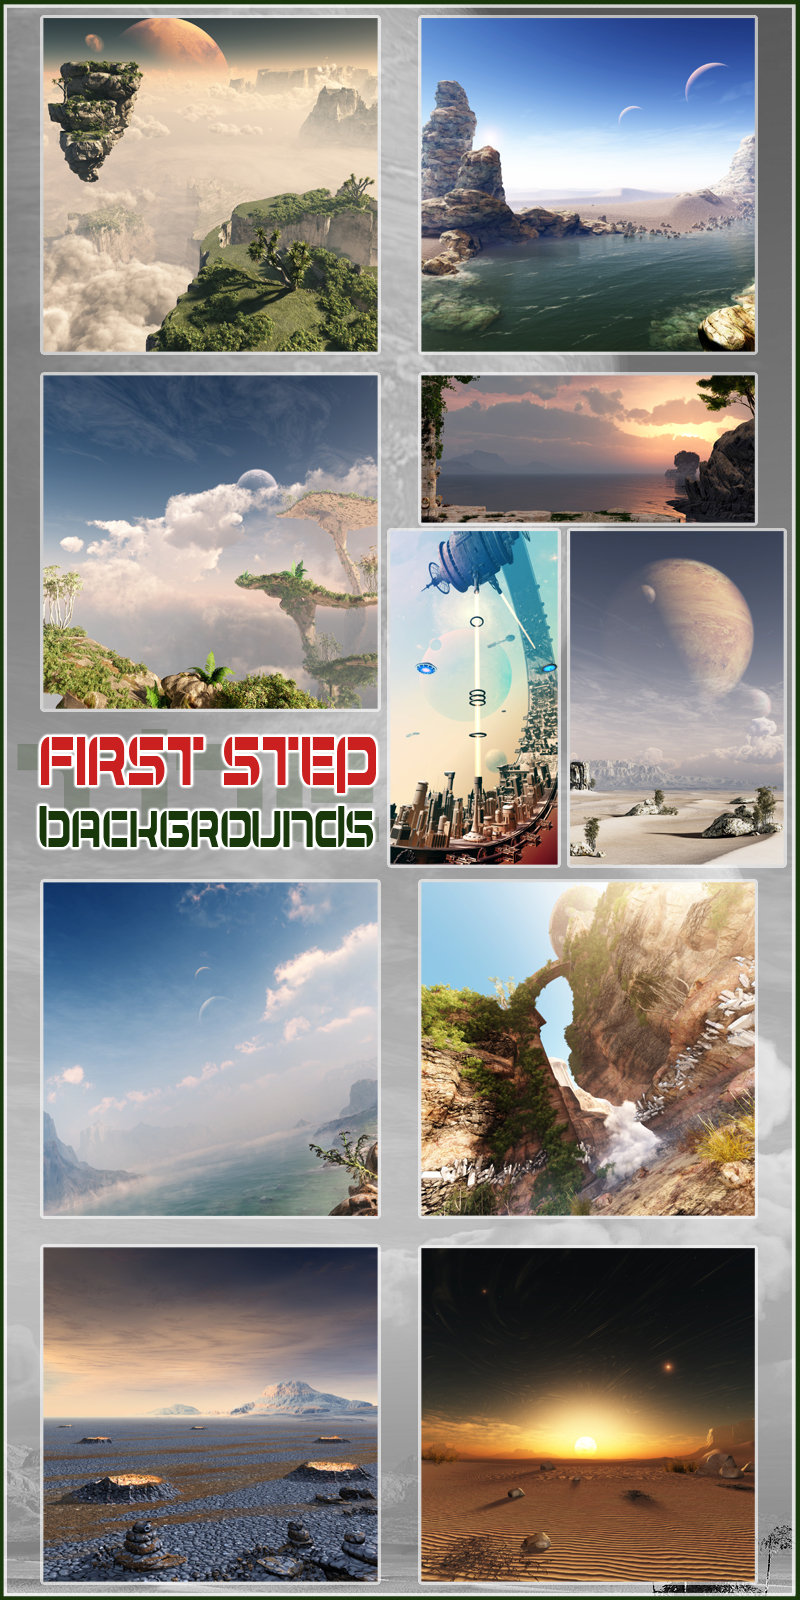 The first step backgrounds